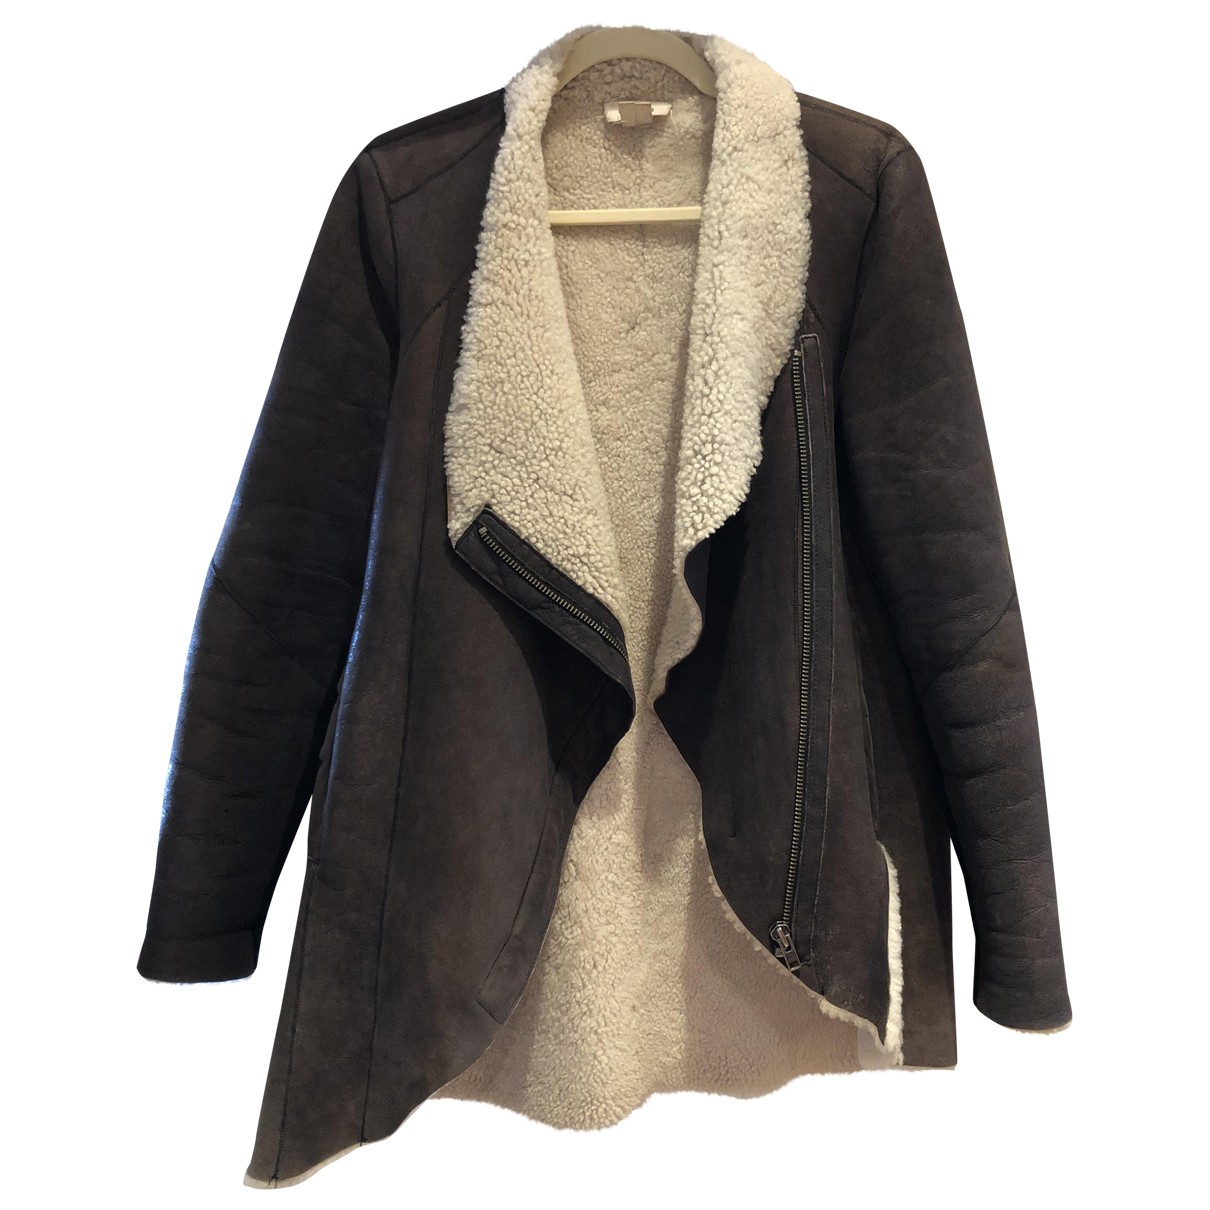 Helmut Lang \N Brown Suede coat for Women M International